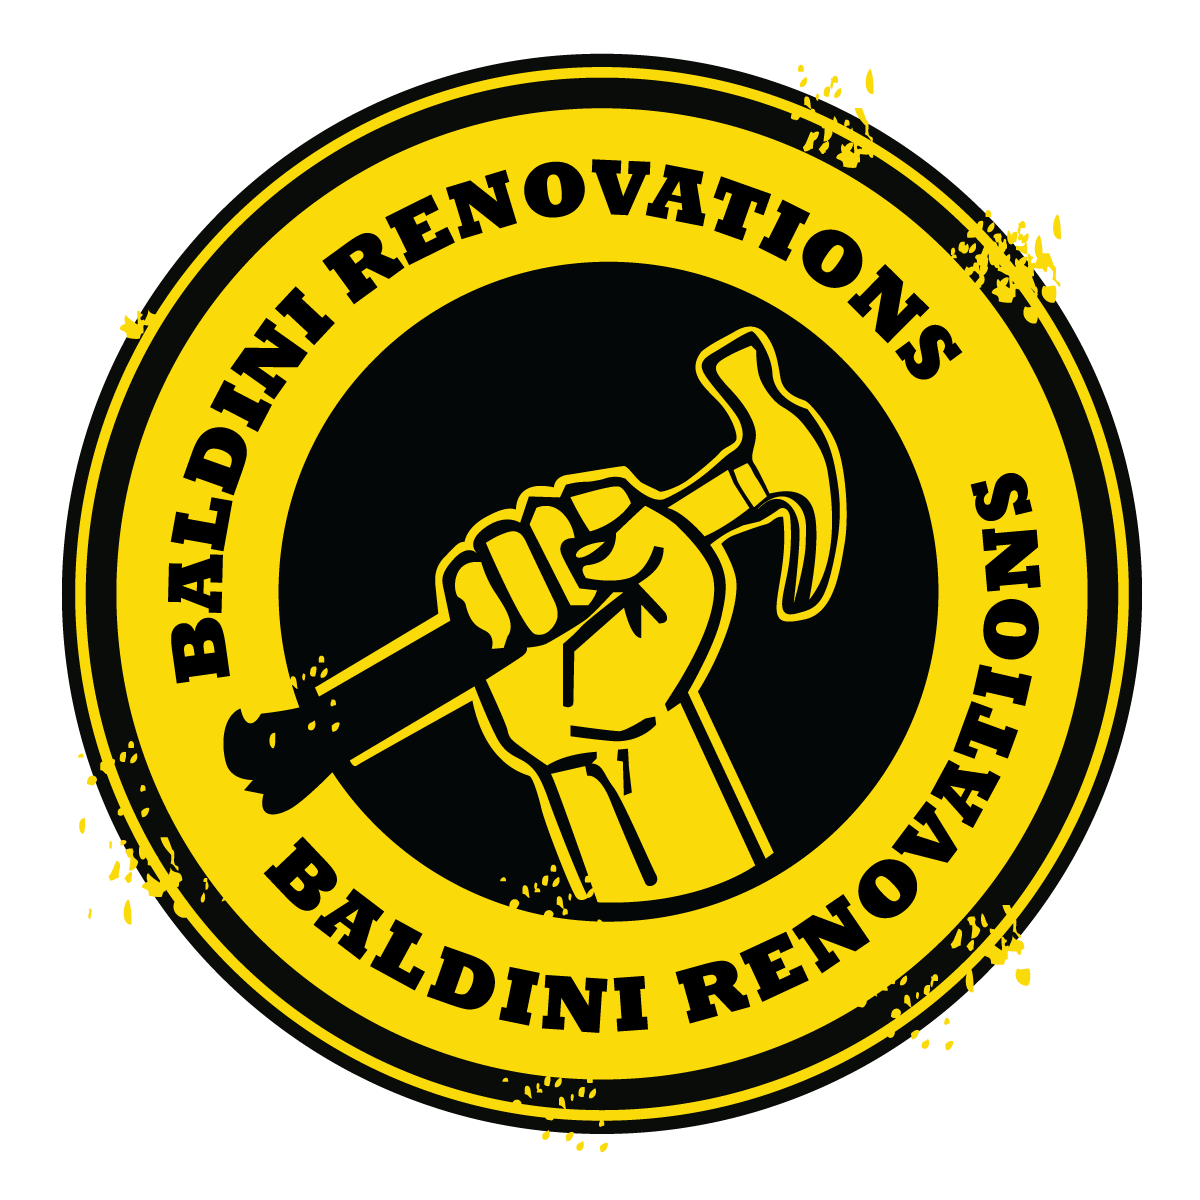 Baldini Renovations Retina Logo